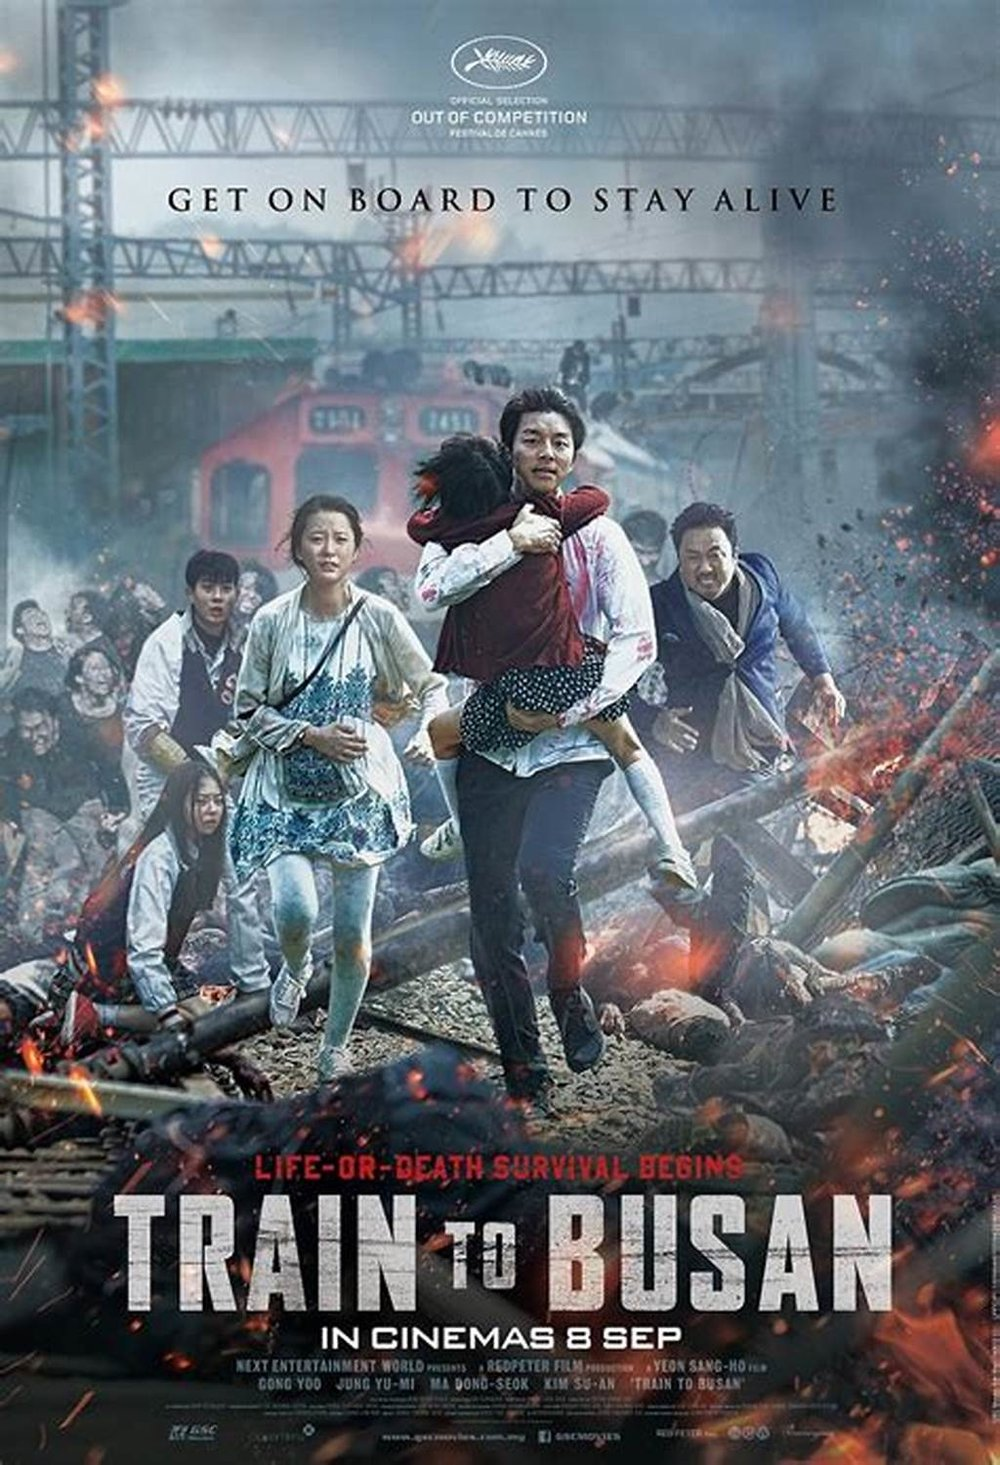 Train to Busan - Region: Korea